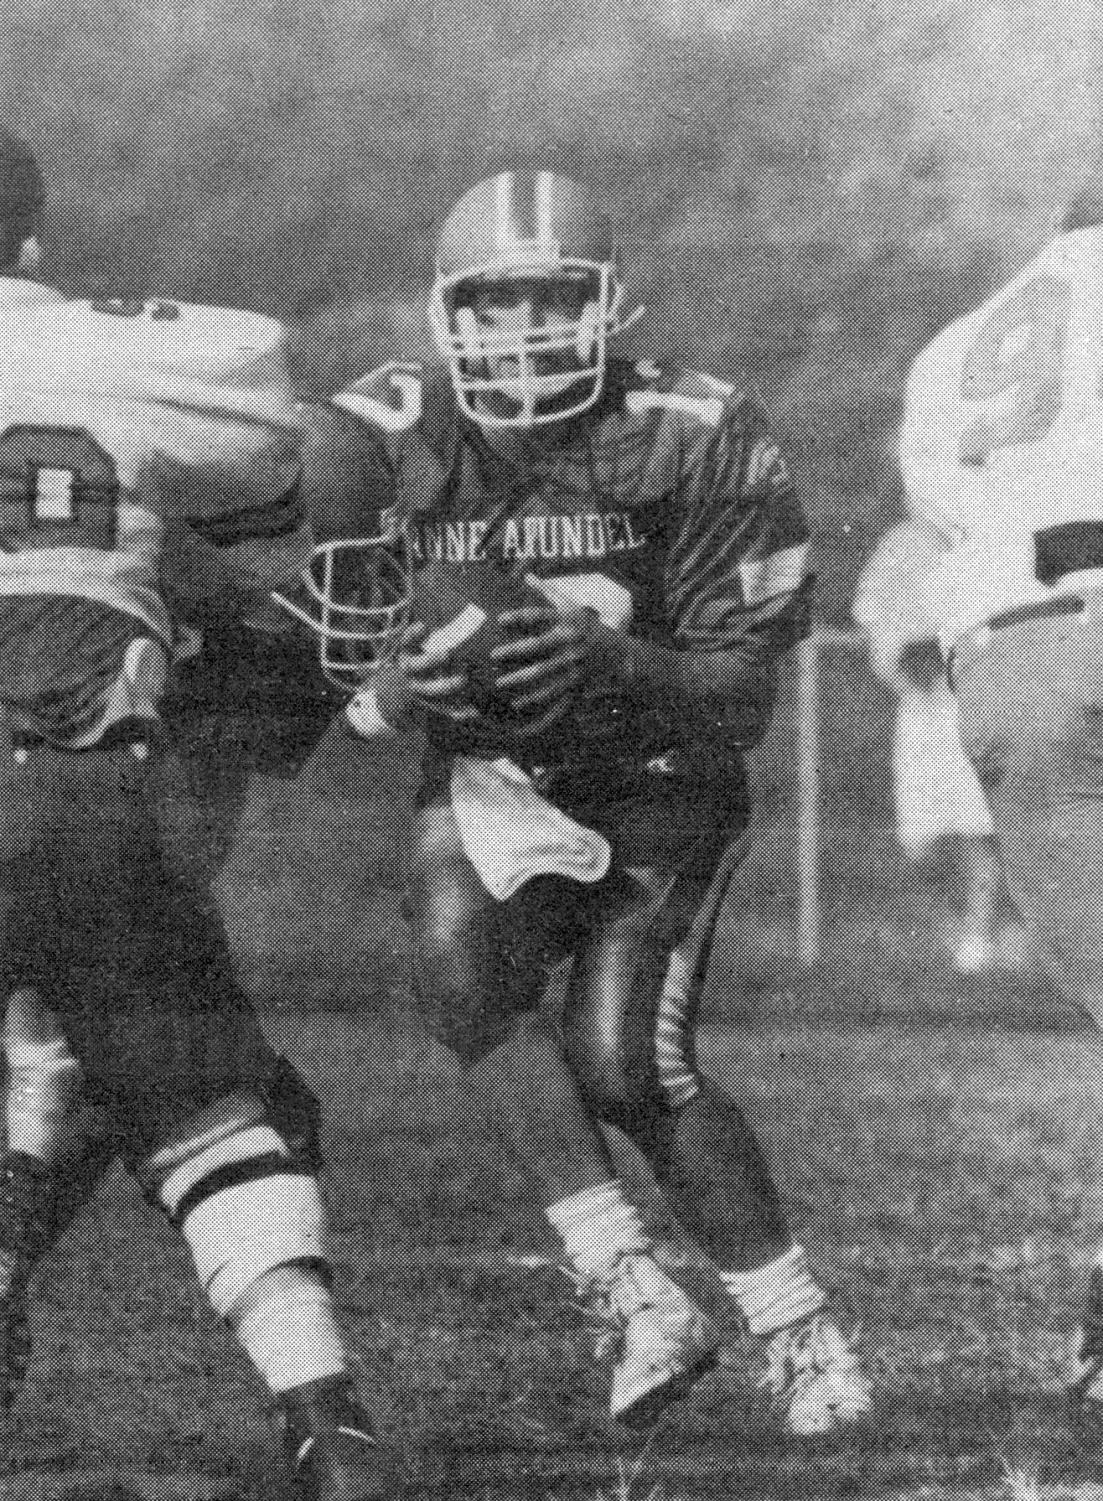 AACC fielded a football team until 1990, when a lack of competition and poor academic performance among players shut the program down.